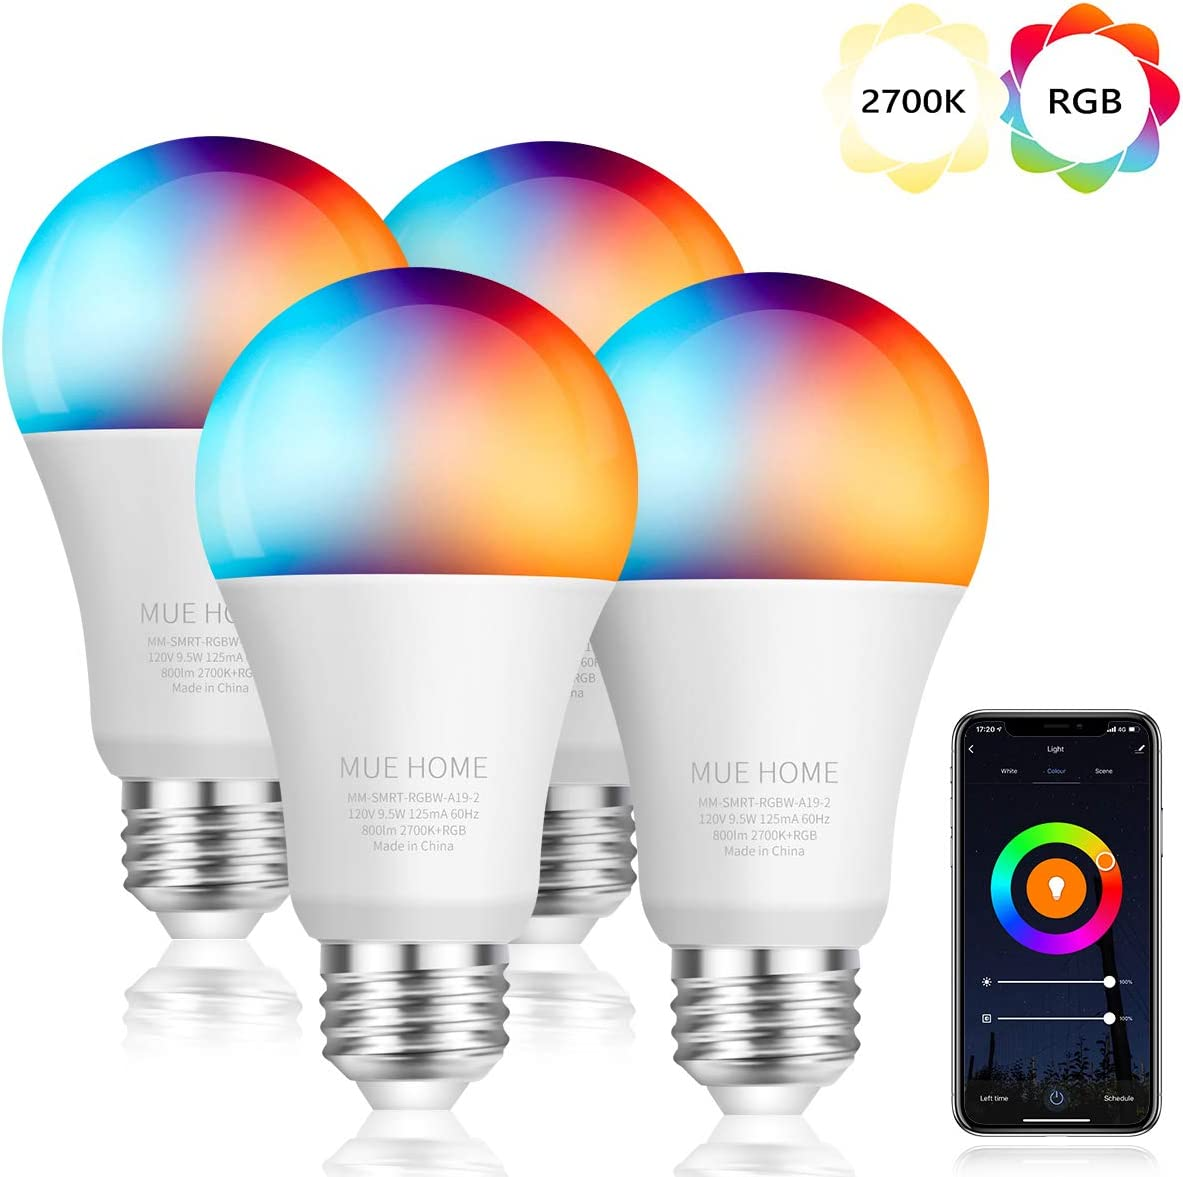 Smart WiFi 2.4 Ghz (NOT 5 Ghz) A19 Light Bulb, Dimmable 2LED + RGB Multicolor Changing, Work with Alexa, Google Home (No Hub Required), E26 Base 9.5W, UL Listed by Mue Home, 4 Pack